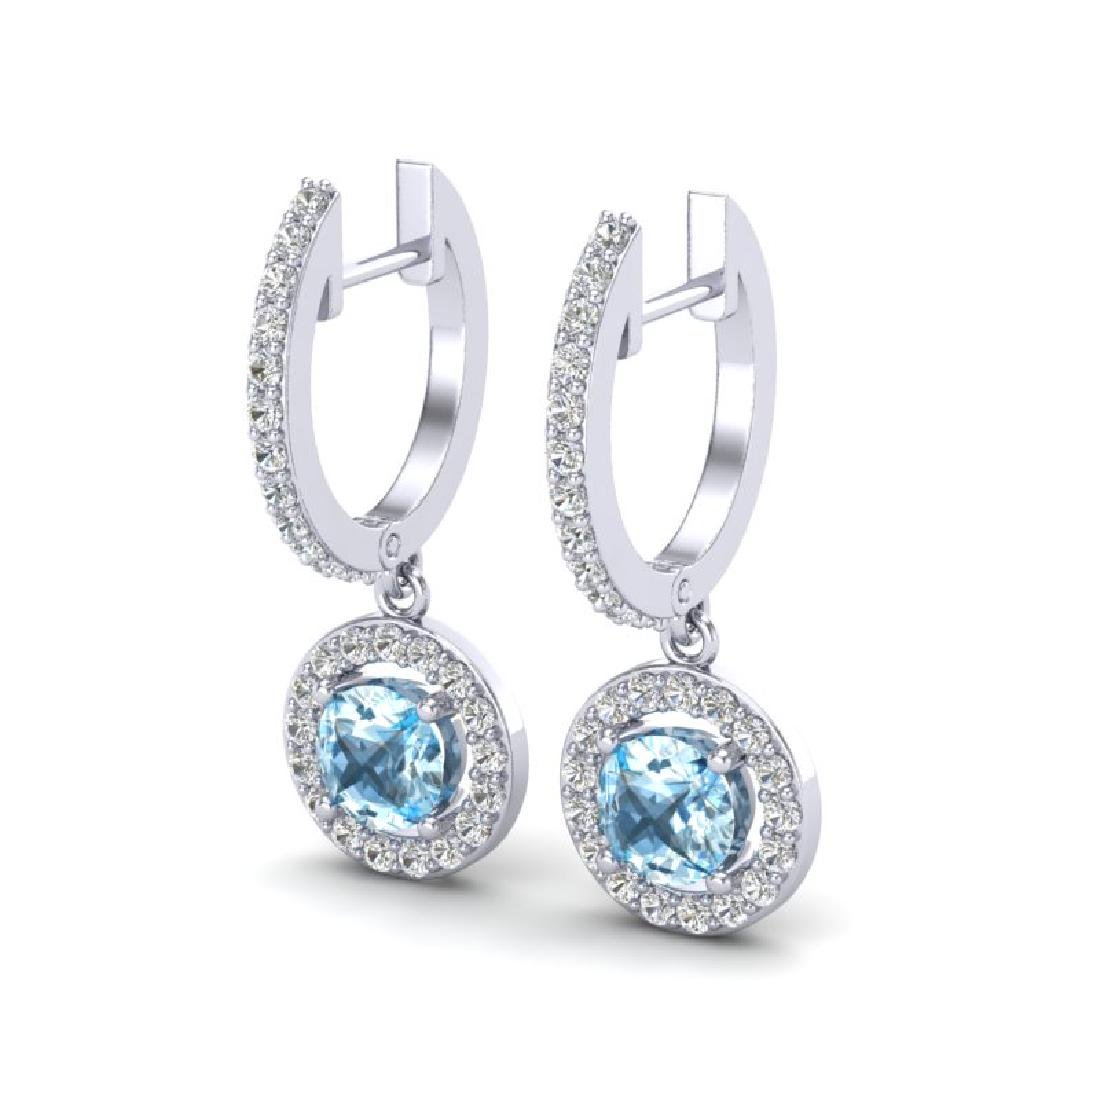 1.75 CTW Sky Topaz & Micro Pave Halo VS/SI Diamond